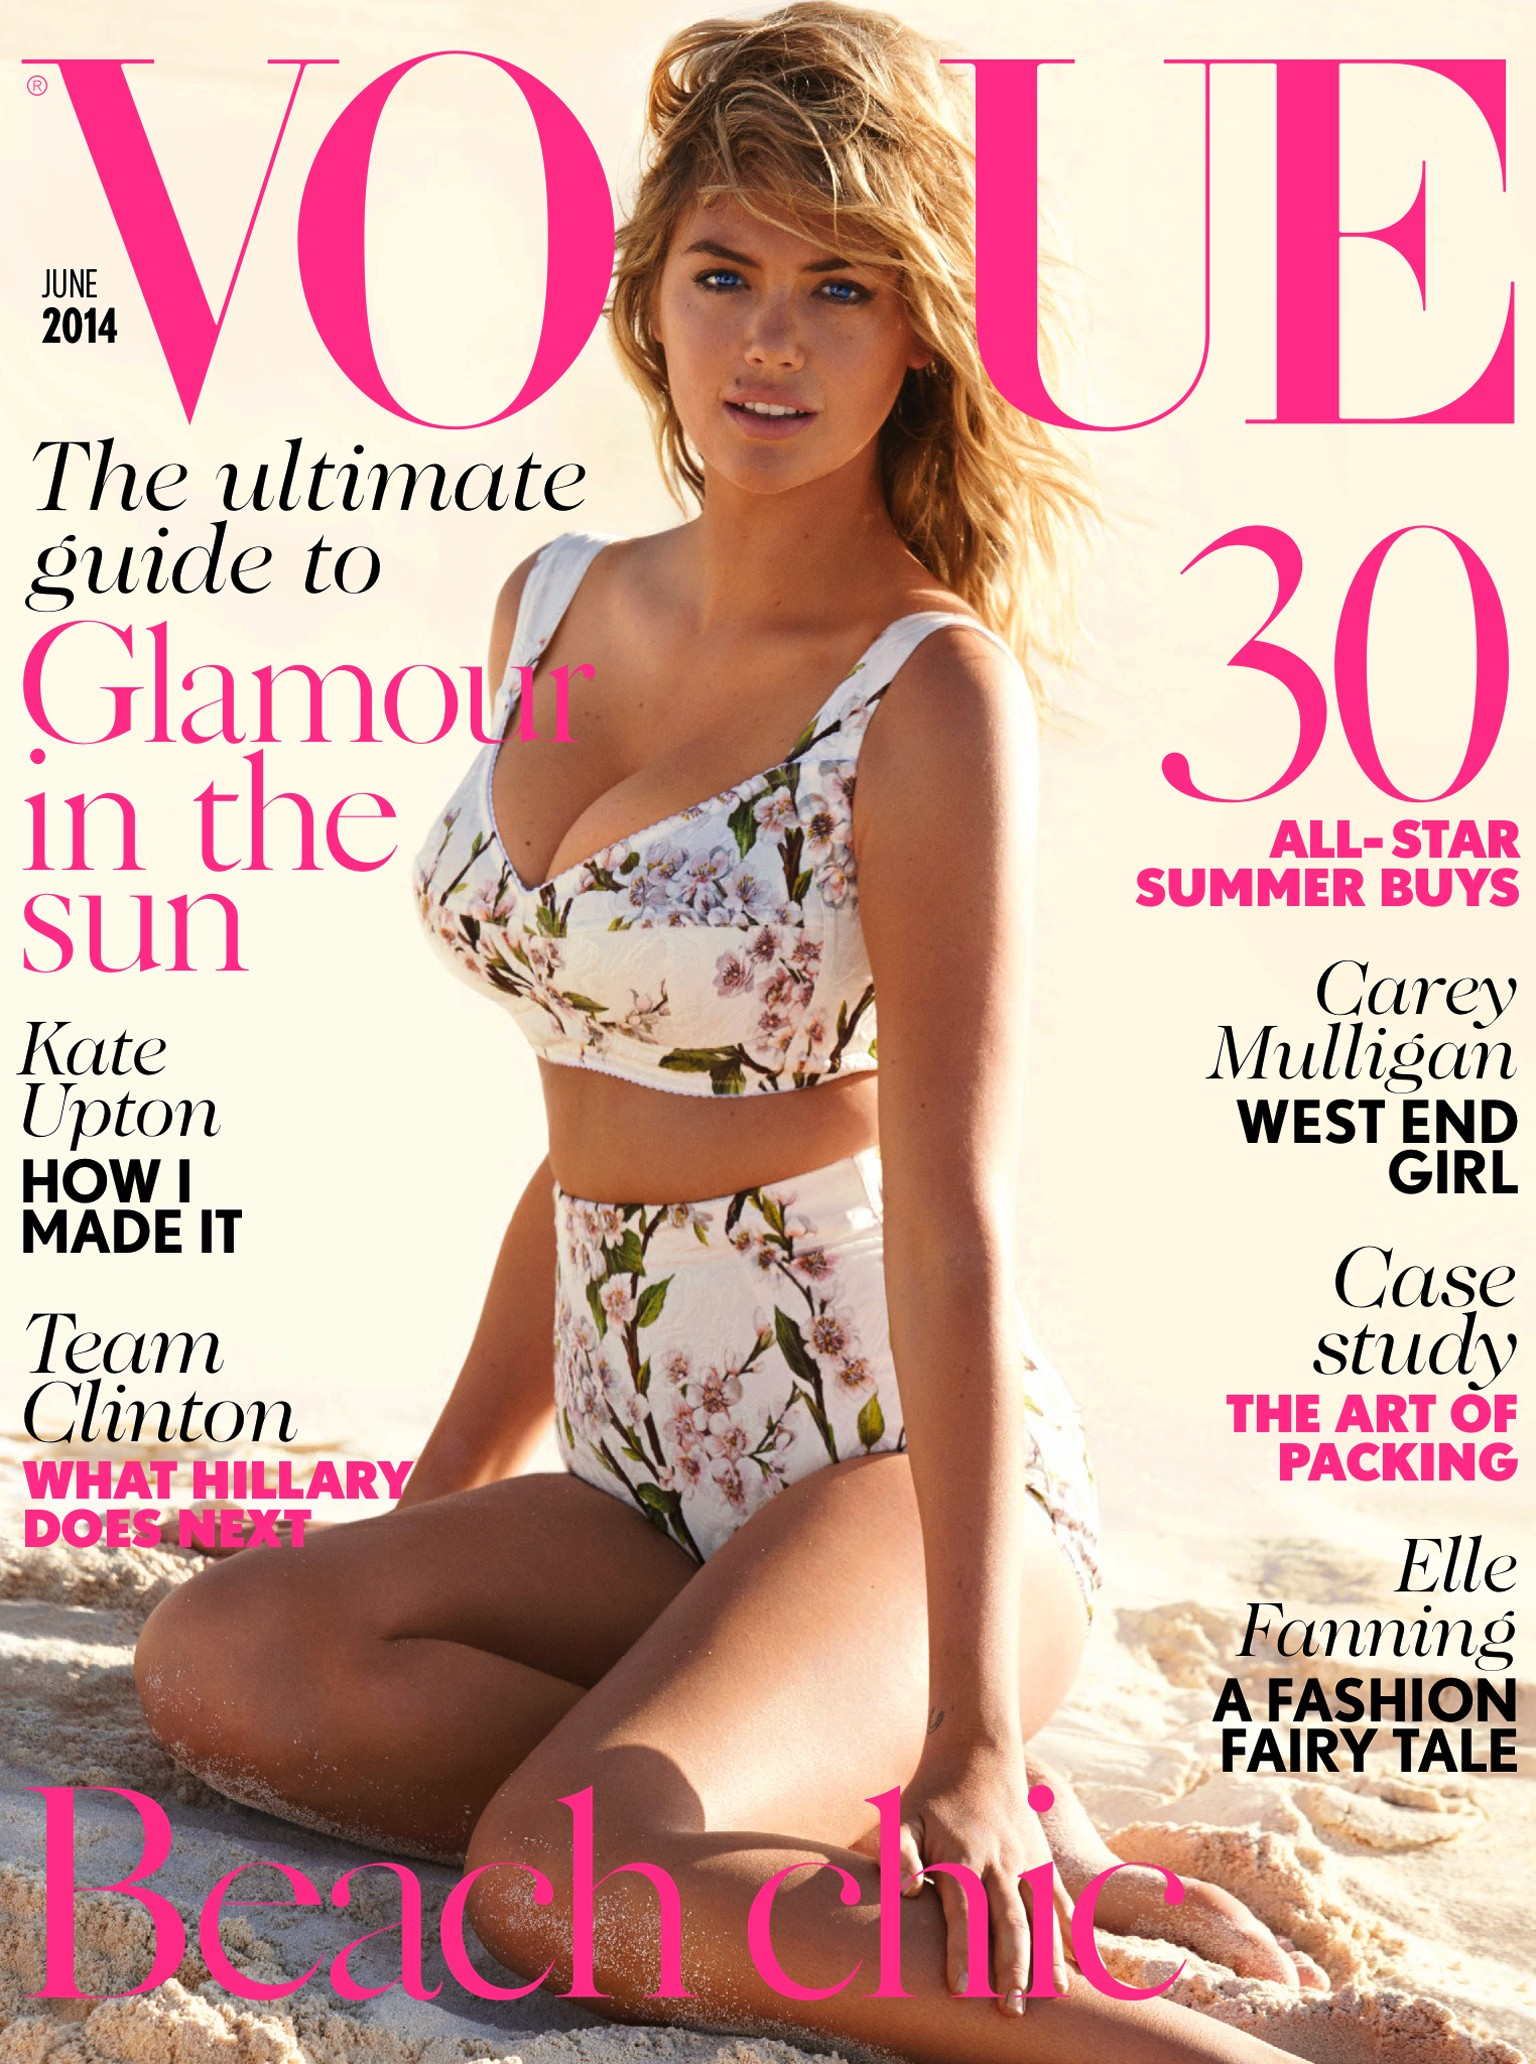 fashion_scans_remastered-kate_upton-vogue_uk-june_2014-scanned_by_vampirehorde-hq-1